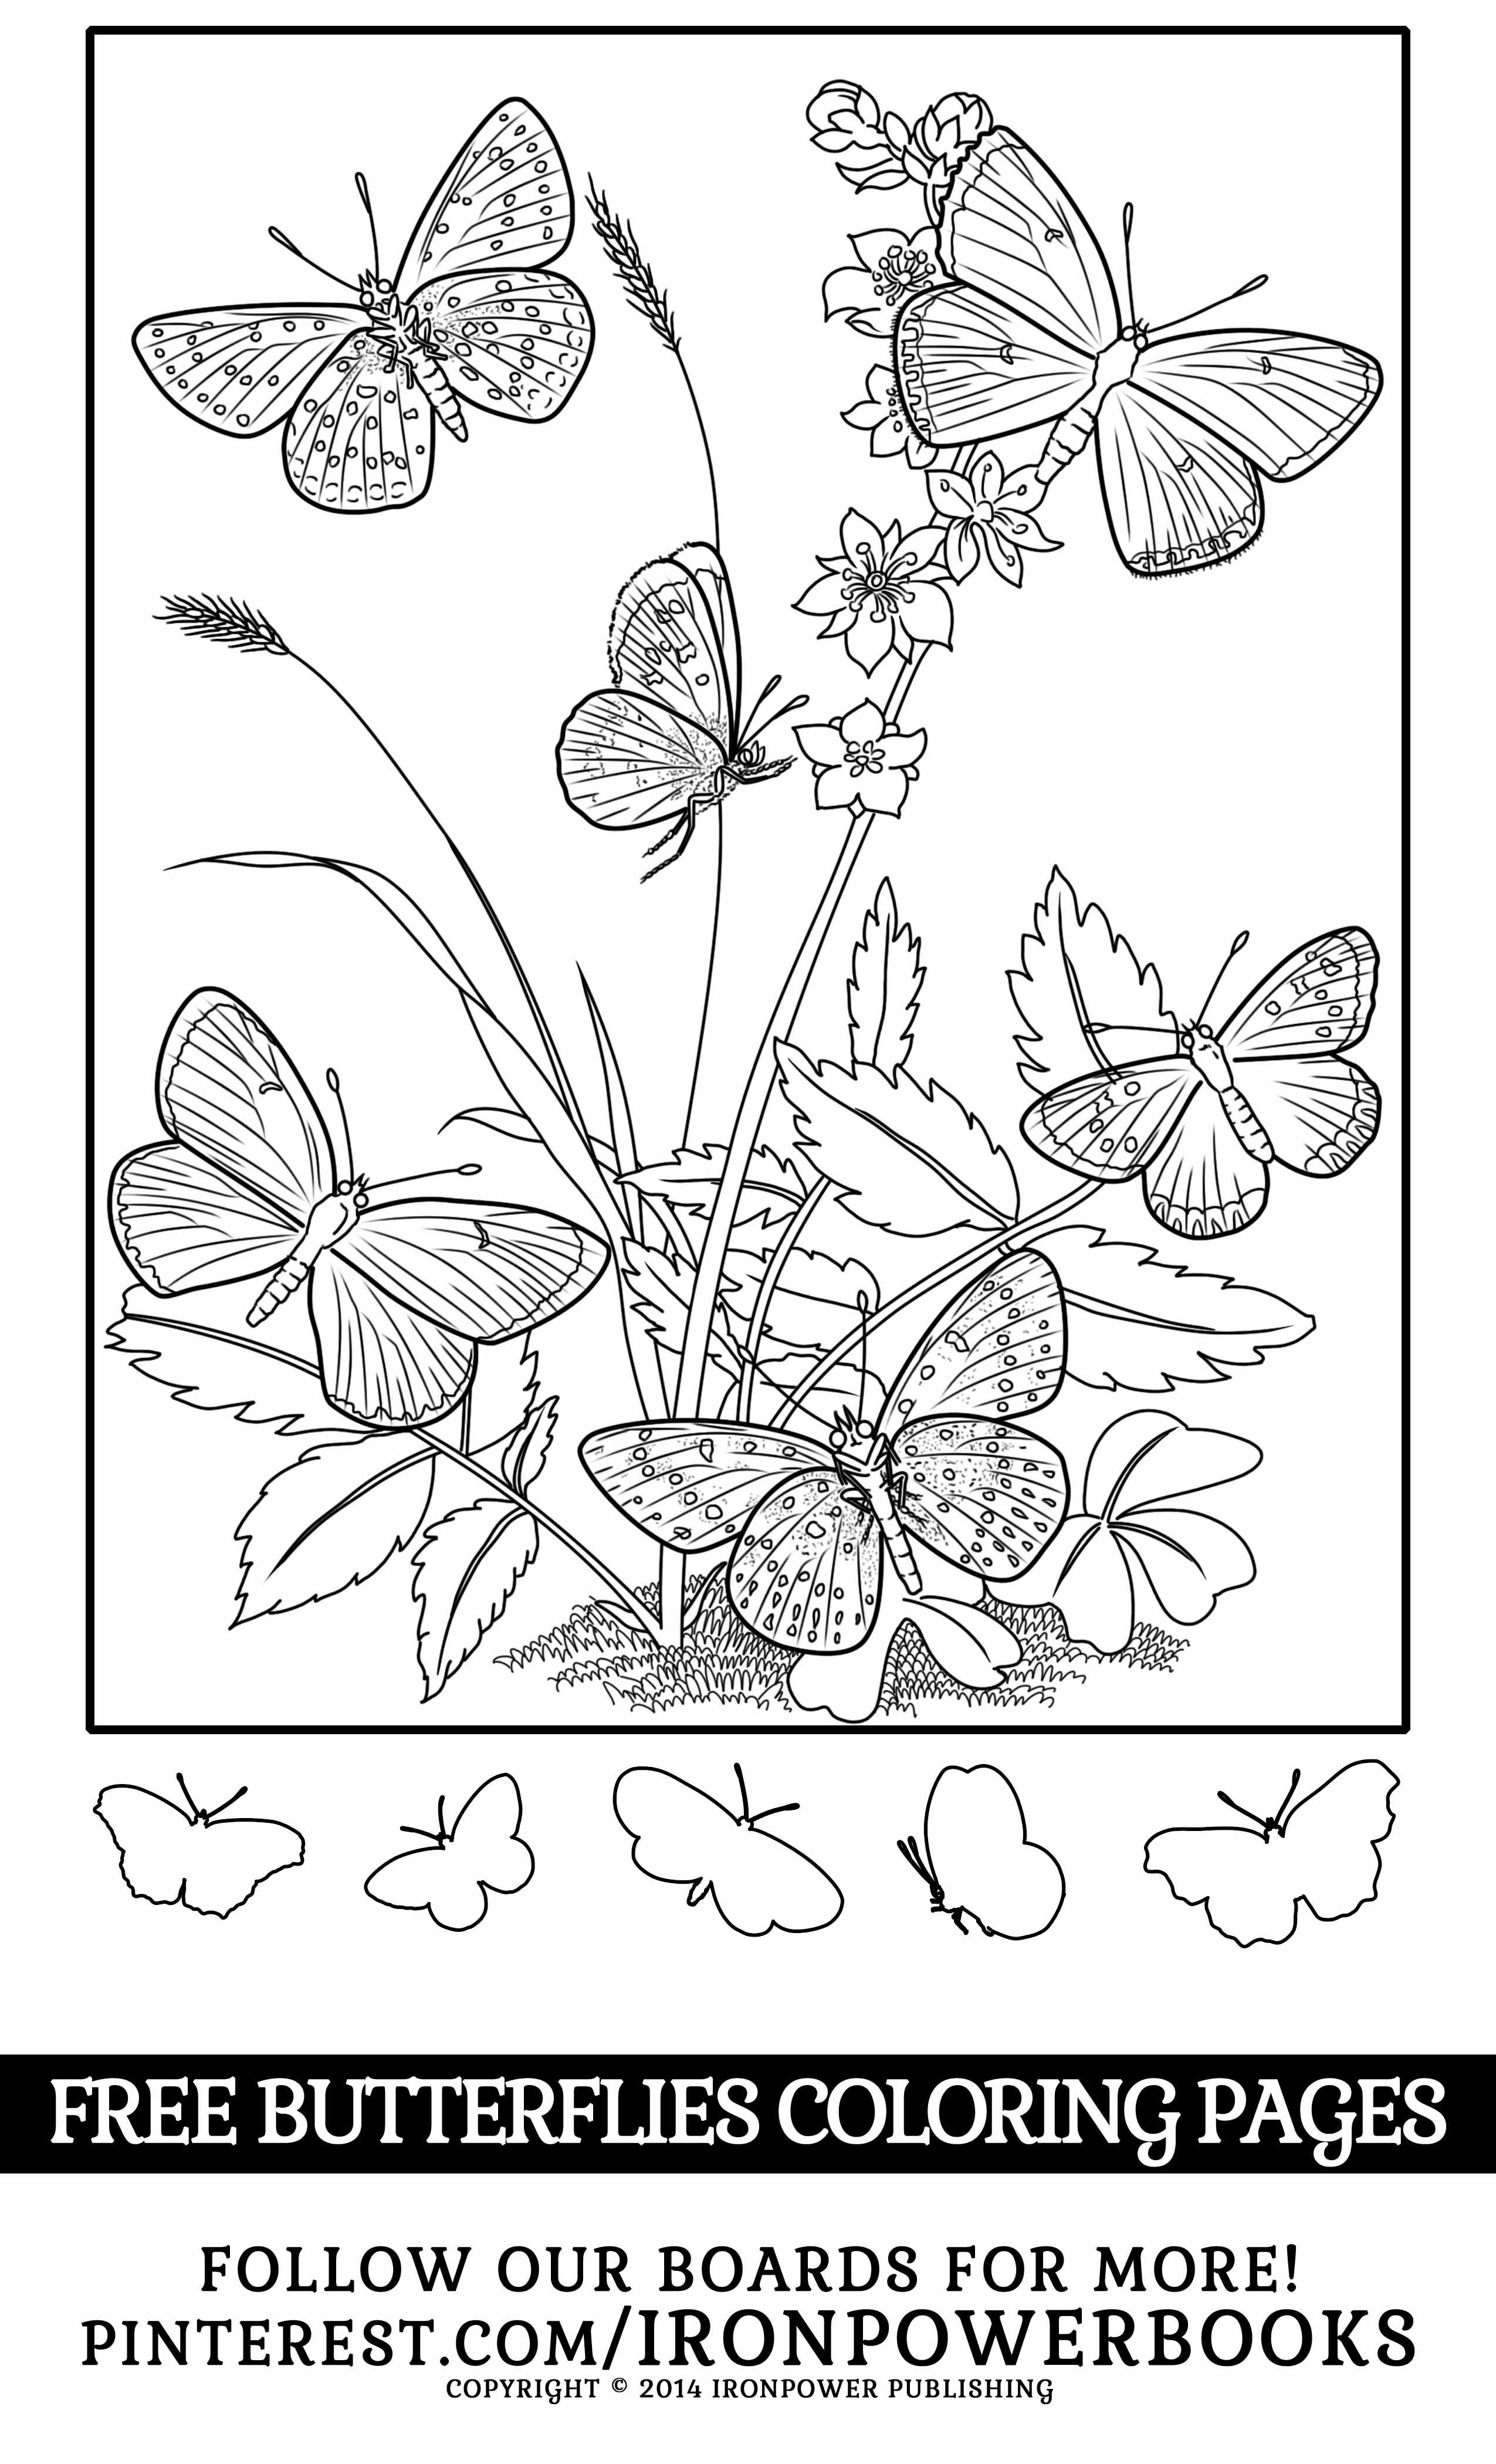 Butterflies Coloring Pages For Girls From Ironpowerbooks Please Use Freely For Personal Non Butterfly Coloring Page Coloring Pages Detailed Coloring Pages